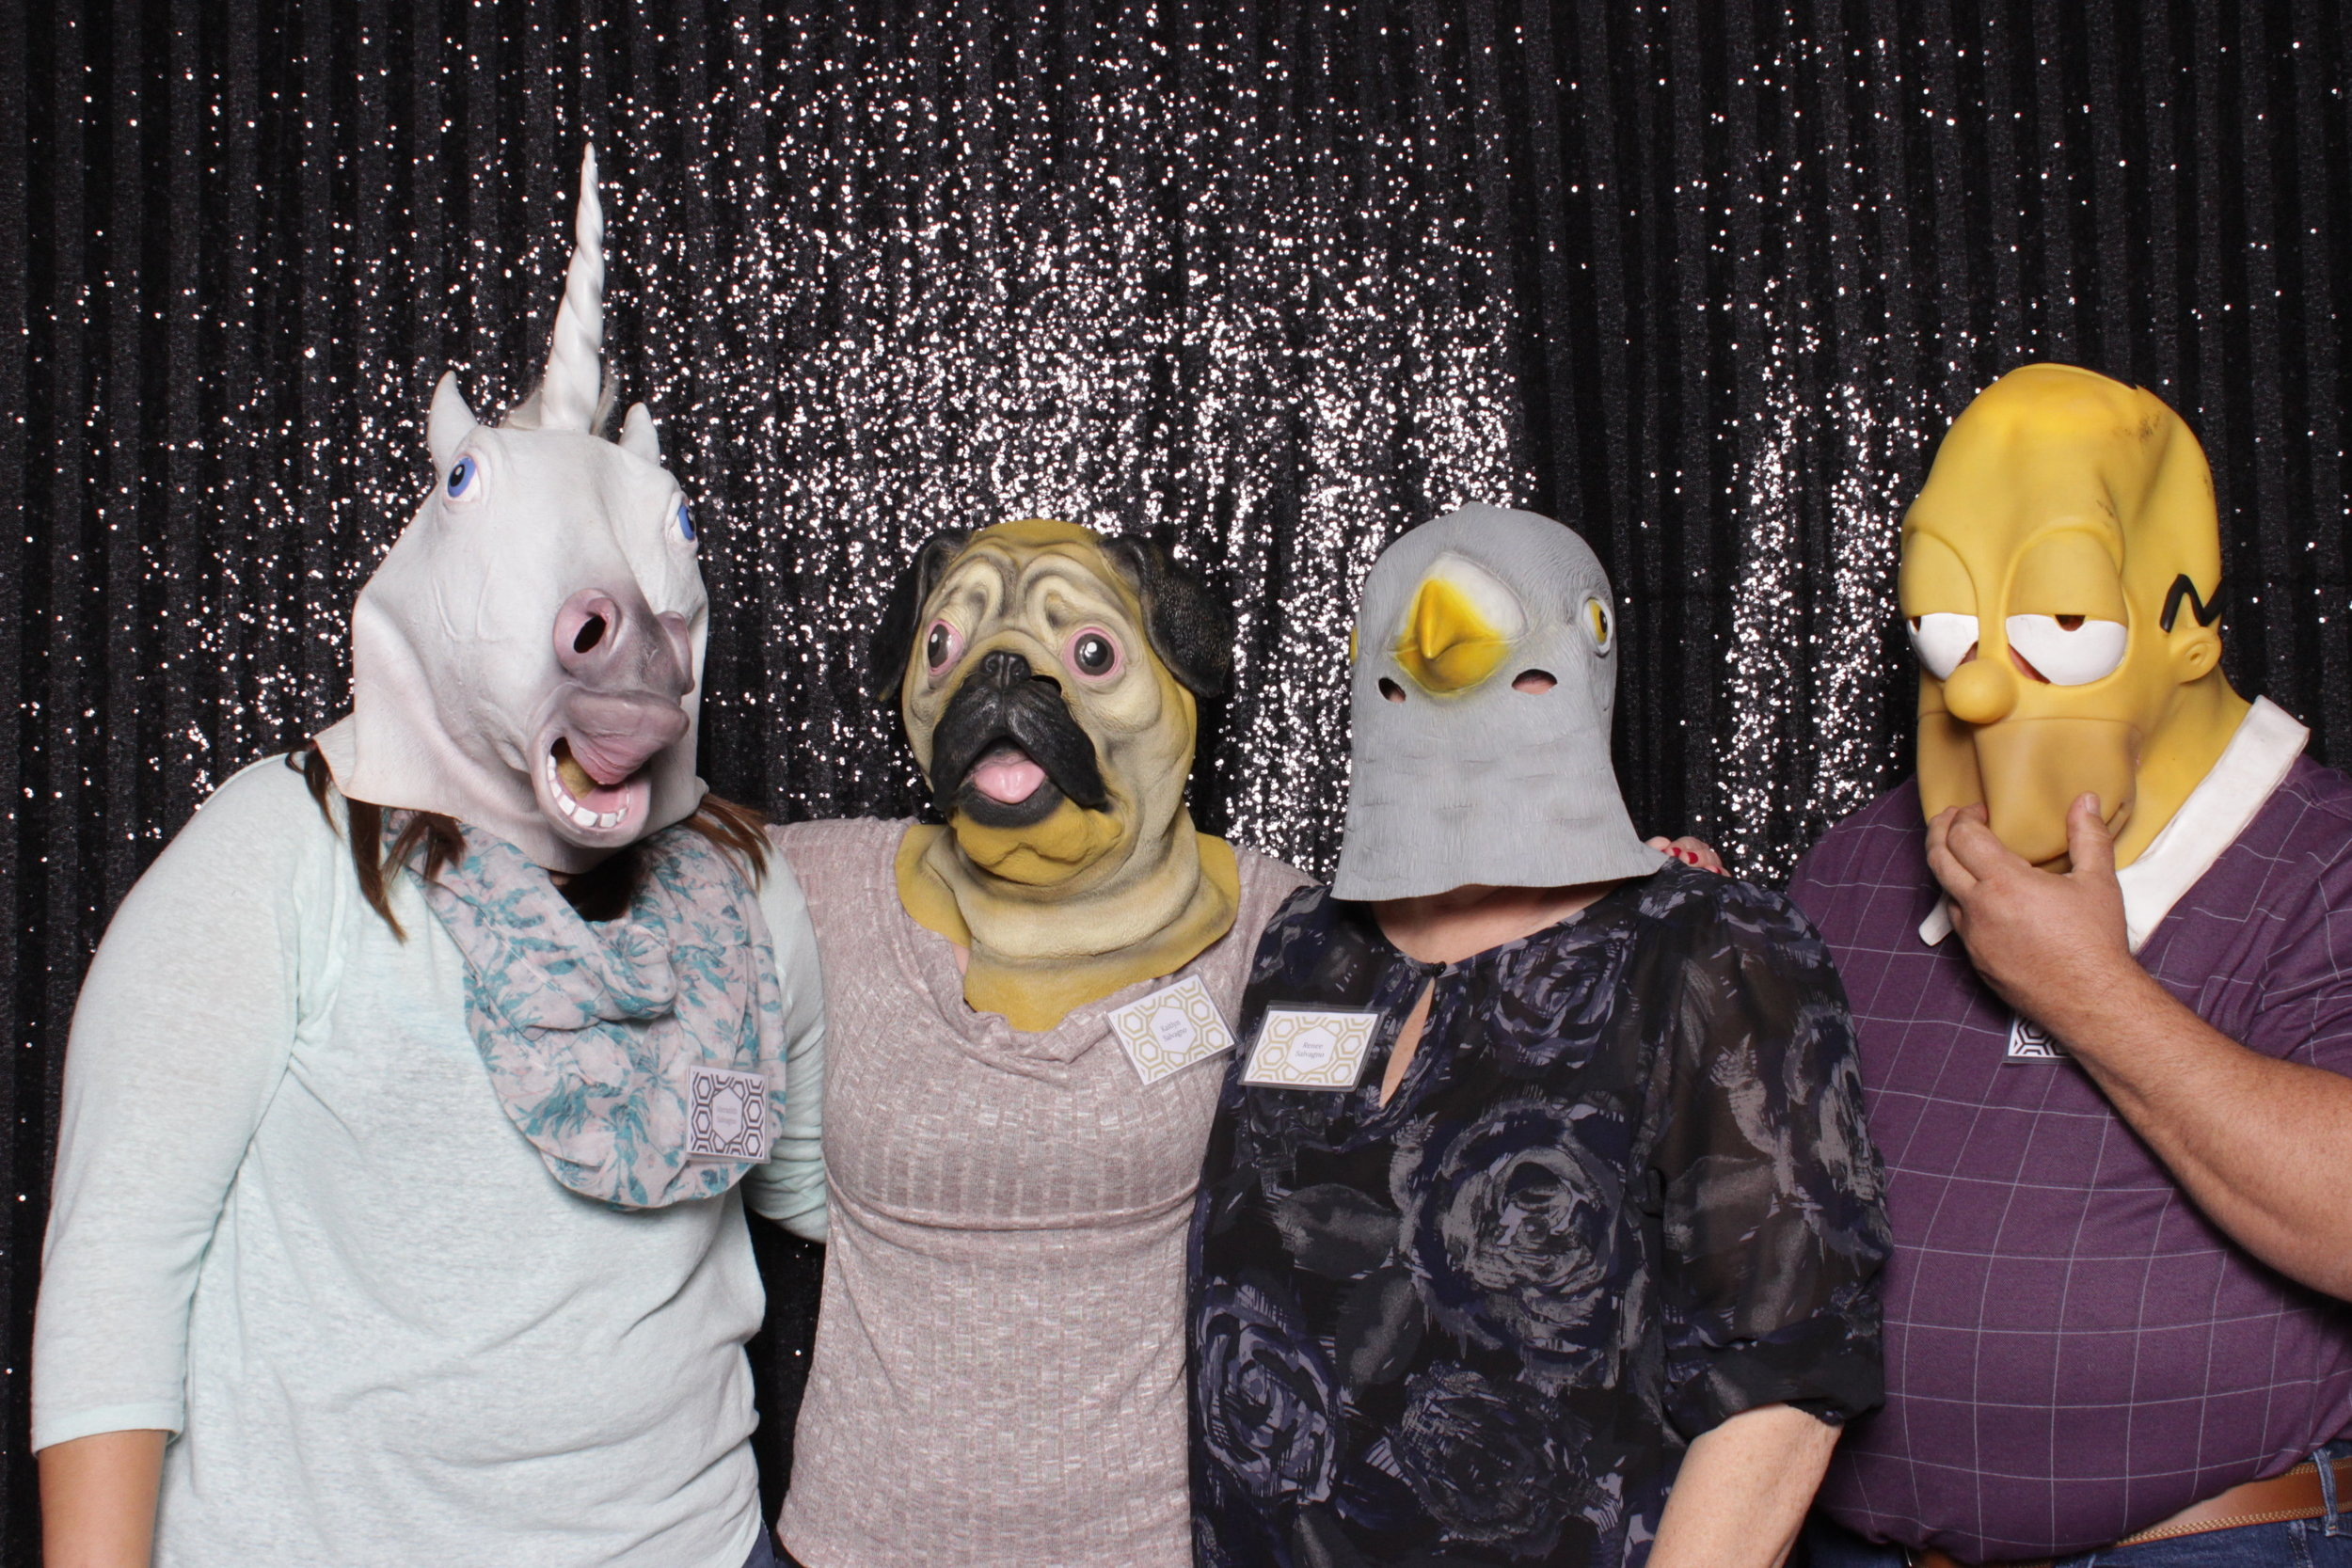 Chico-photo-booth-rental-good-party-ideas